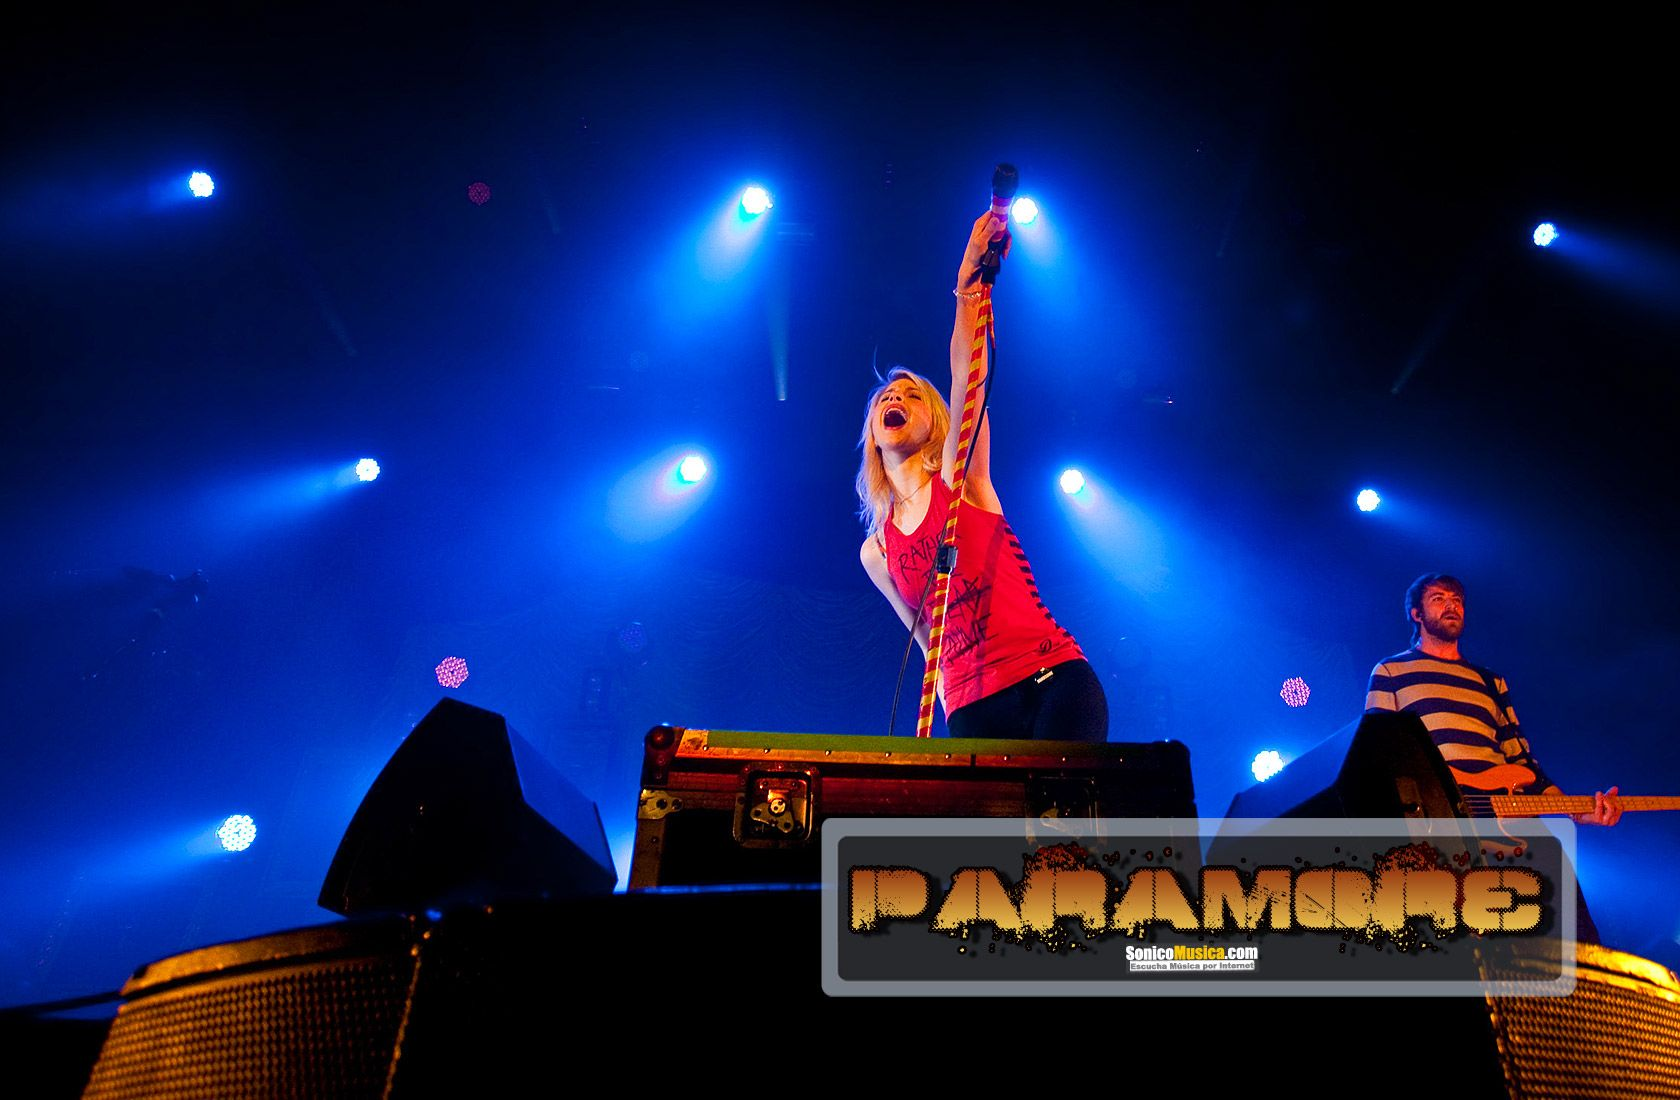 wallpapers de paramore